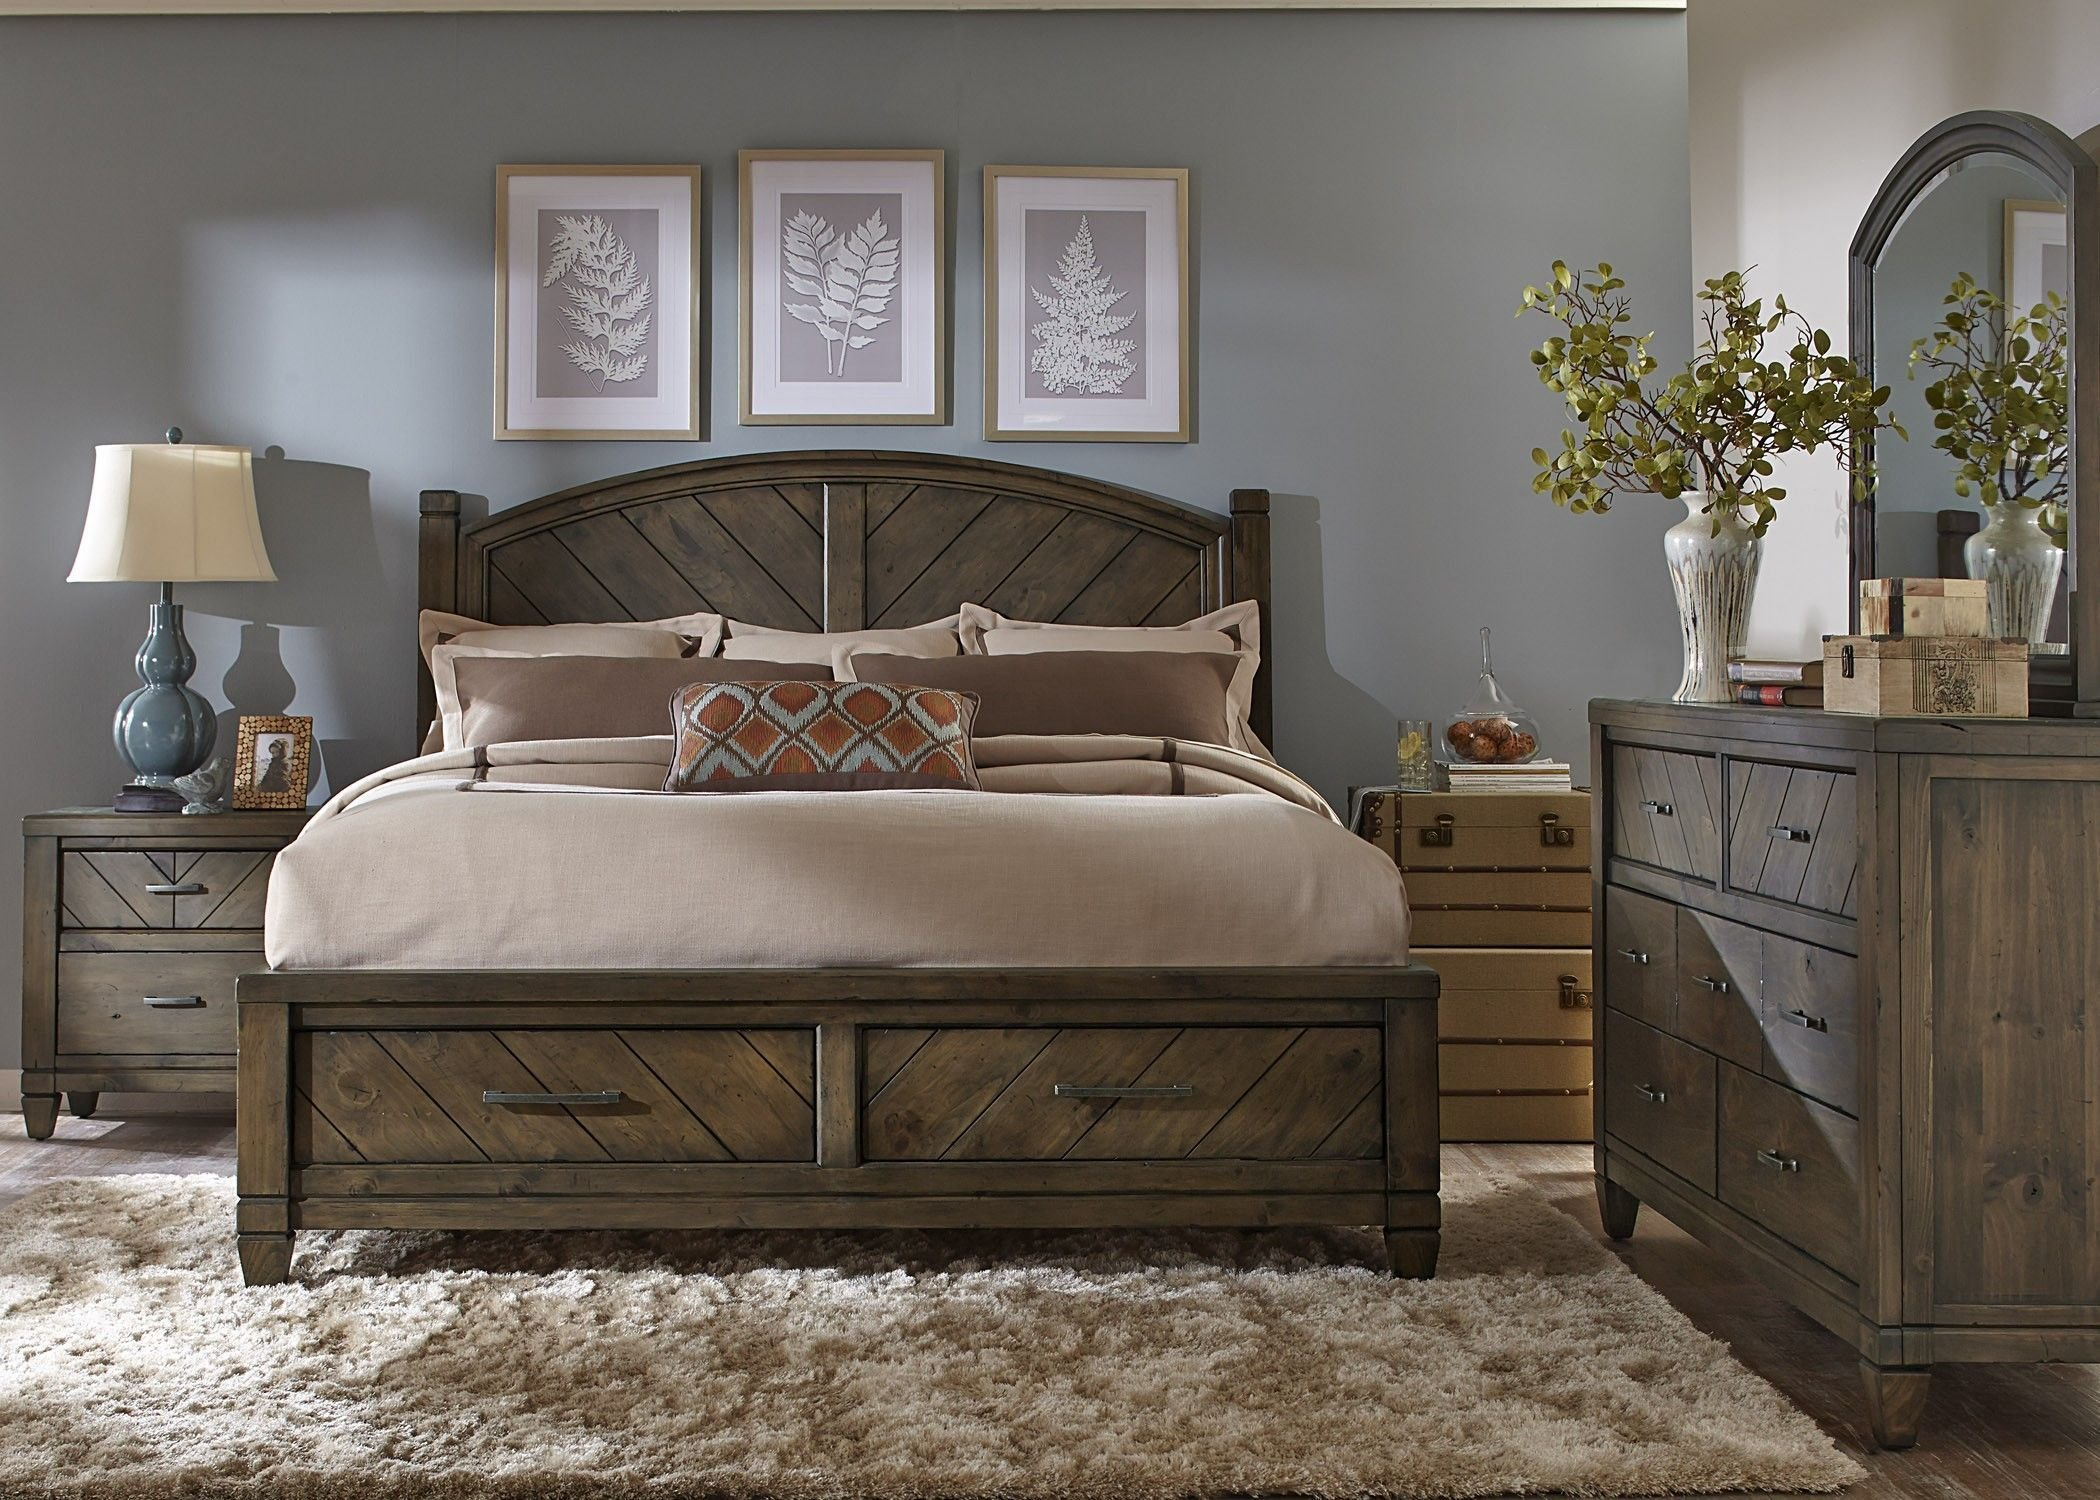 Best Modern Country Bedroom Set Bedroom Pinterest Country With Pictures